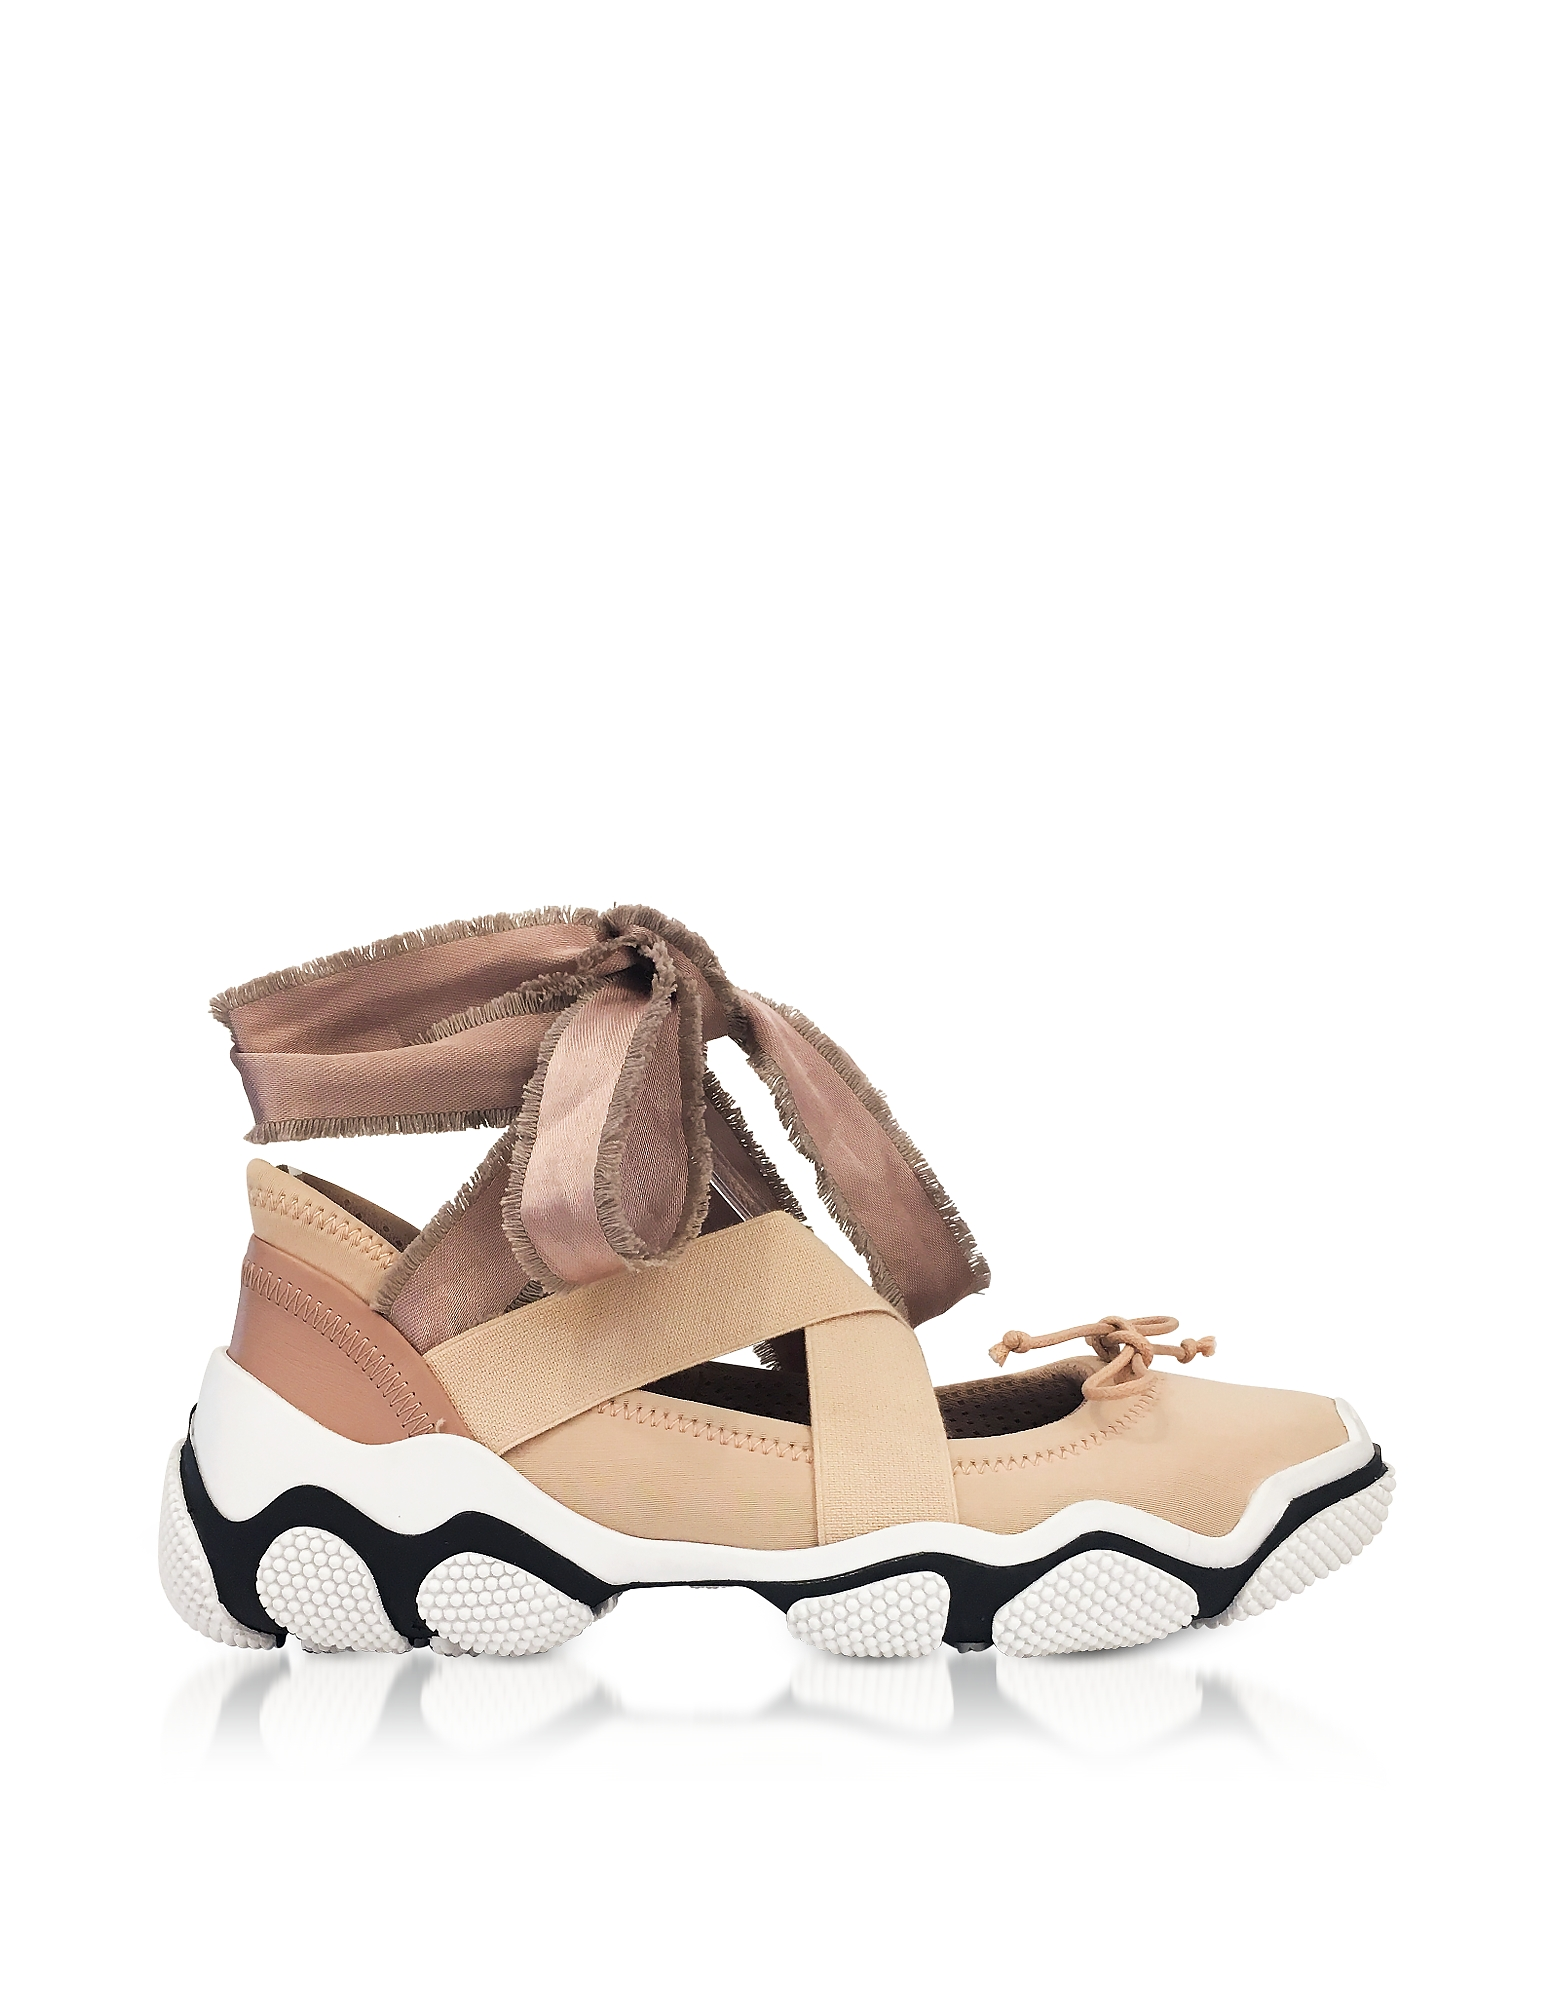 RED Valentino Shoes, Nude Criss Cross Sneakers